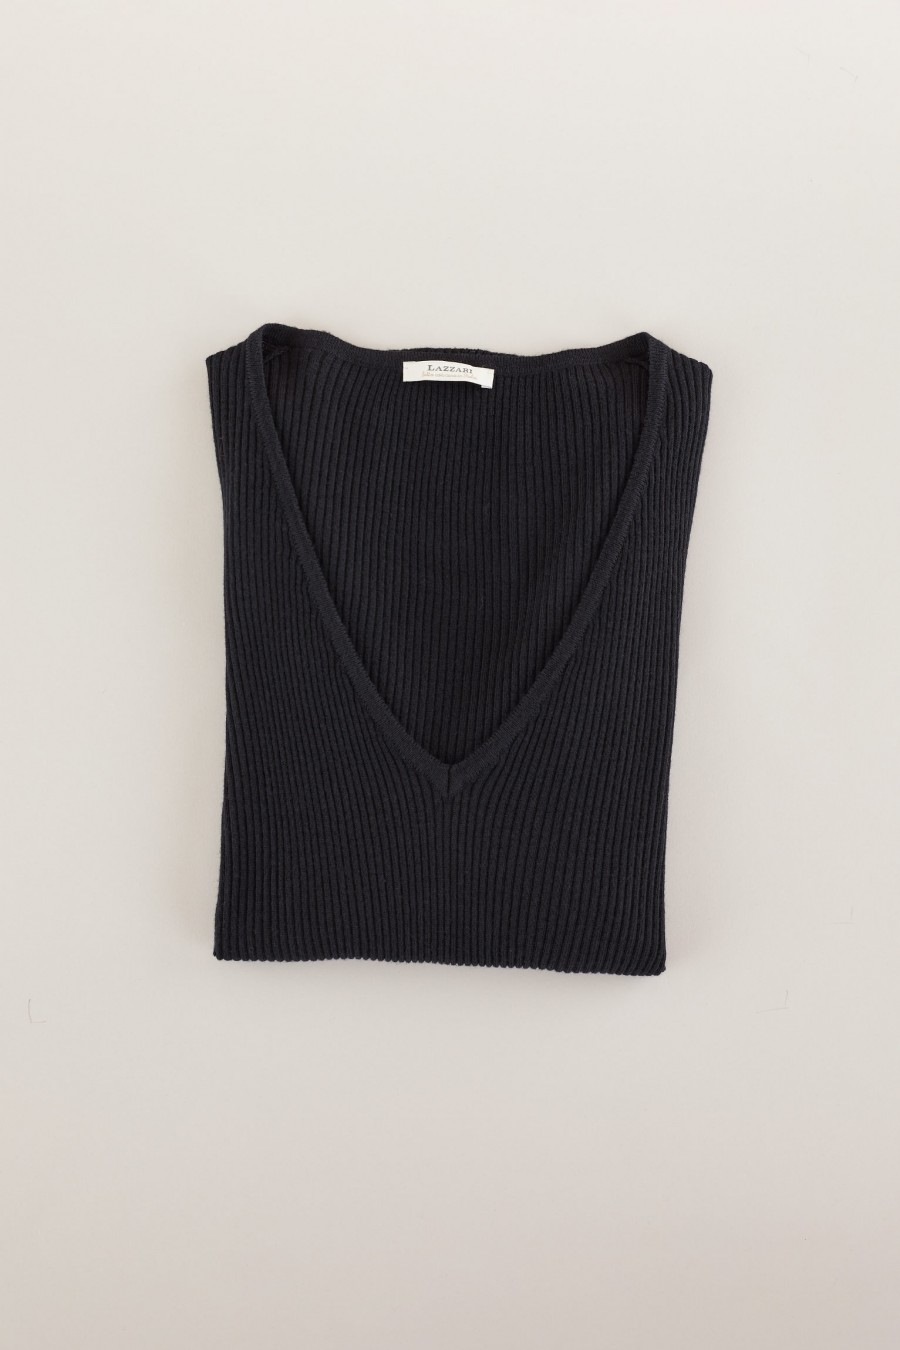 Black thin woolen jumper